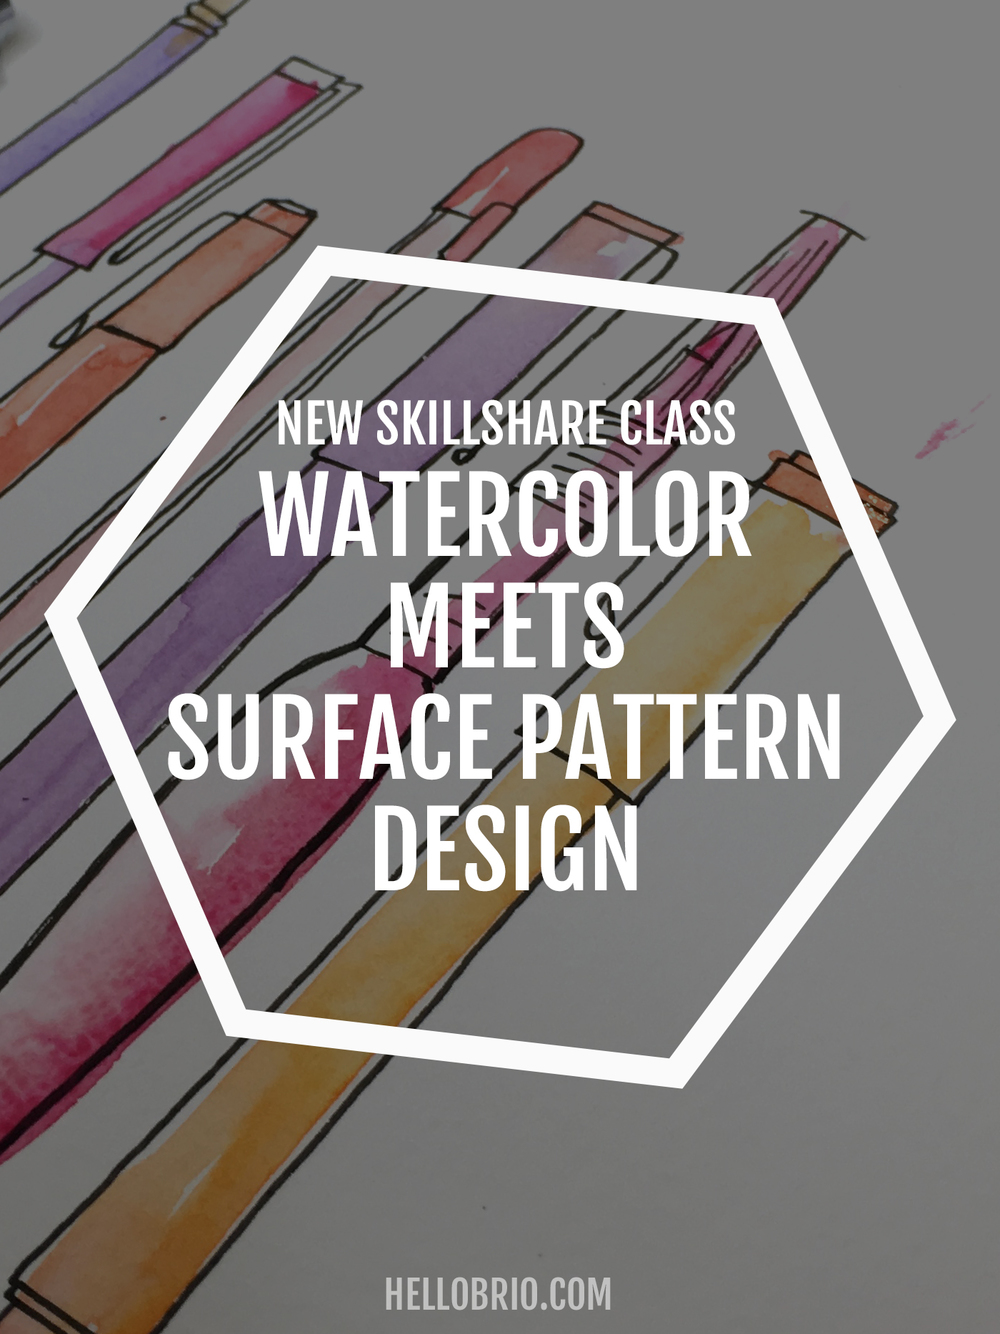 Watercolor Meets Surface Pattern Design